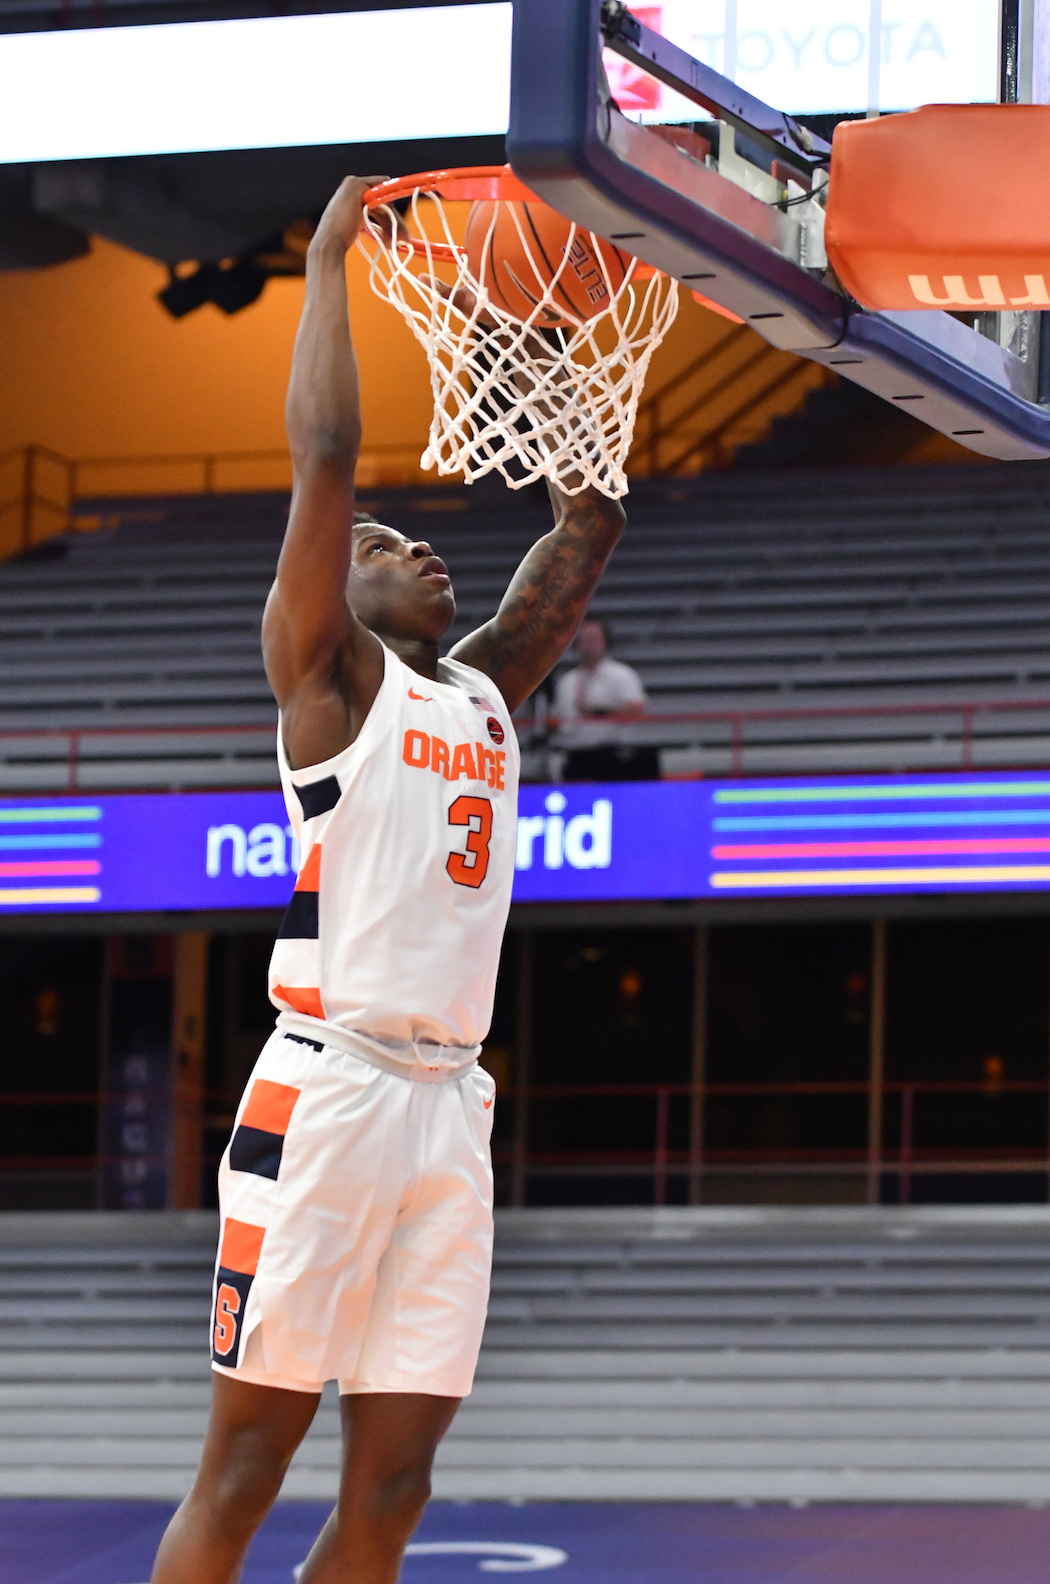 Dec 5, 2020; Syracuse, New York, USA; Syracuse Orange forward Kadary Richmond (3) dunks the ball in the first half against the Rider Broncs at the Carrier Dome. Mandatory Credit: Mark Konezny-USA TODAY Sports